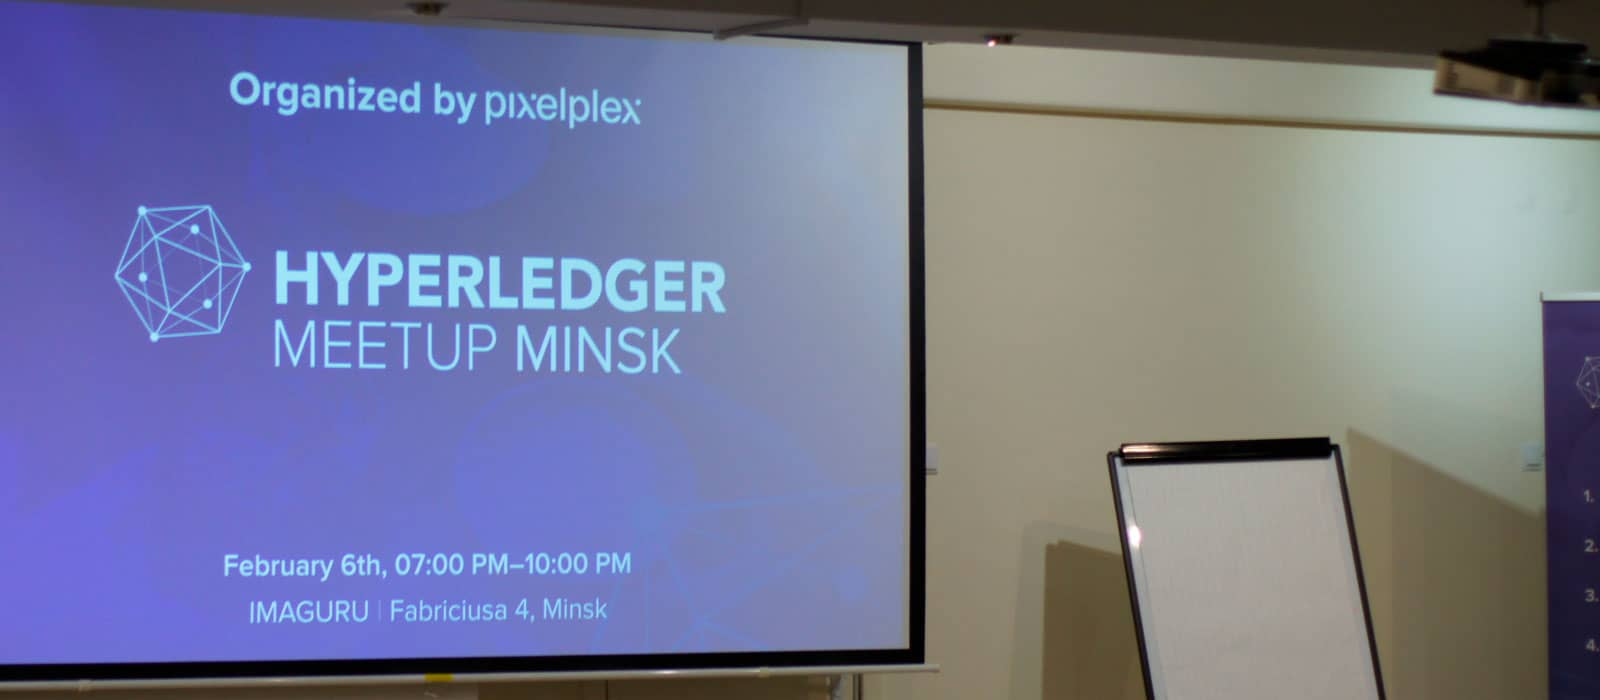 A screen with information about Hyperledger Meetup Minsk 2020 next to a blackboard